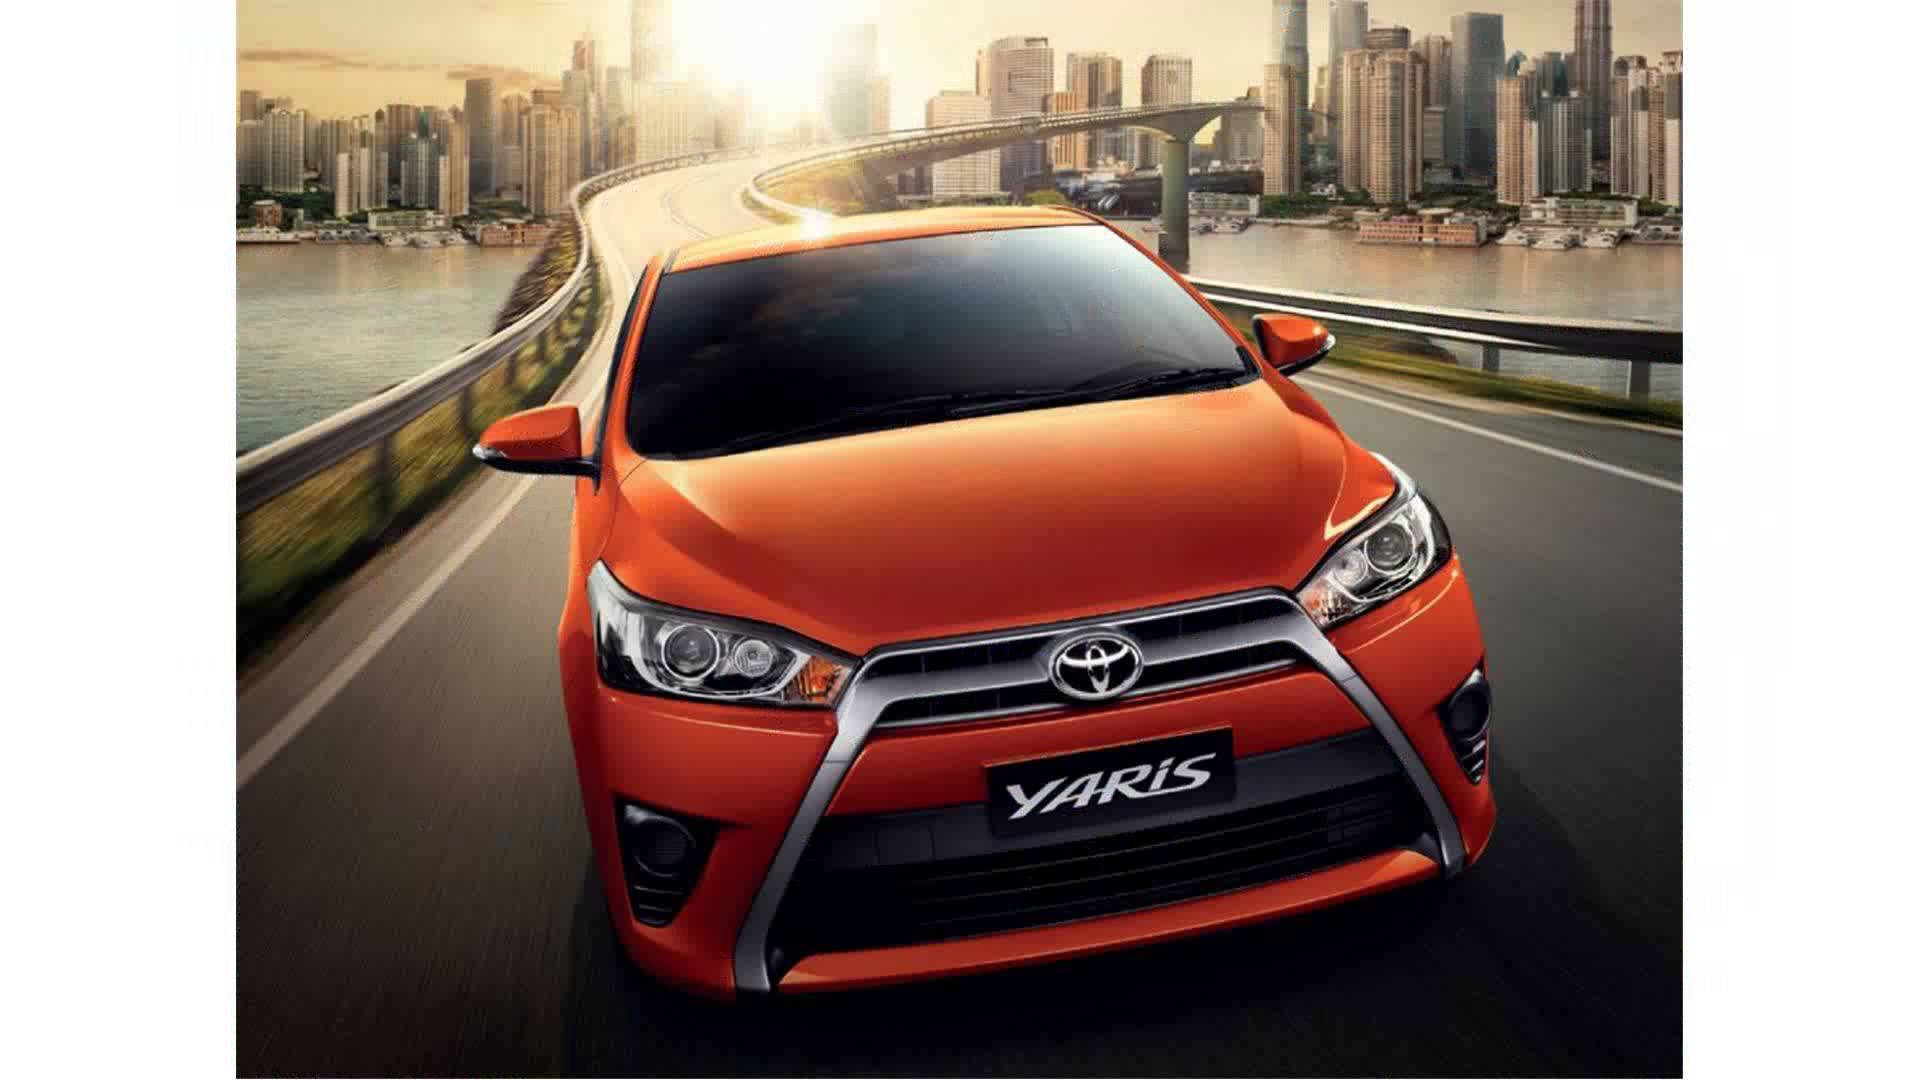 Toyota Yaris Hatchback 2017 HD Wallpapers